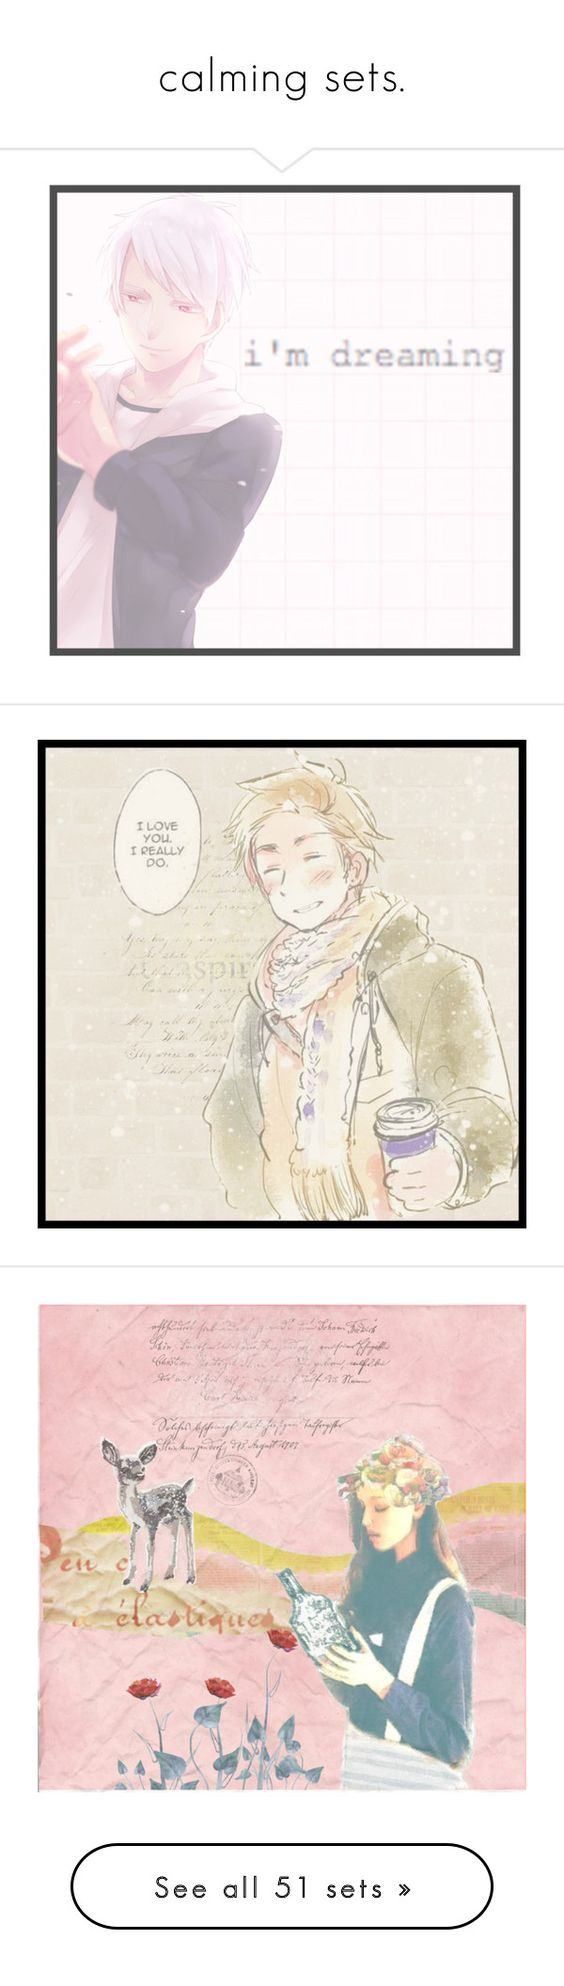 """""""calming sets."""" by akihabara ❤ liked on Polyvore featuring art, anime, pastel, Hetalia, Prussia, Christmas, denmark, country, highqueenbaesista and artset"""